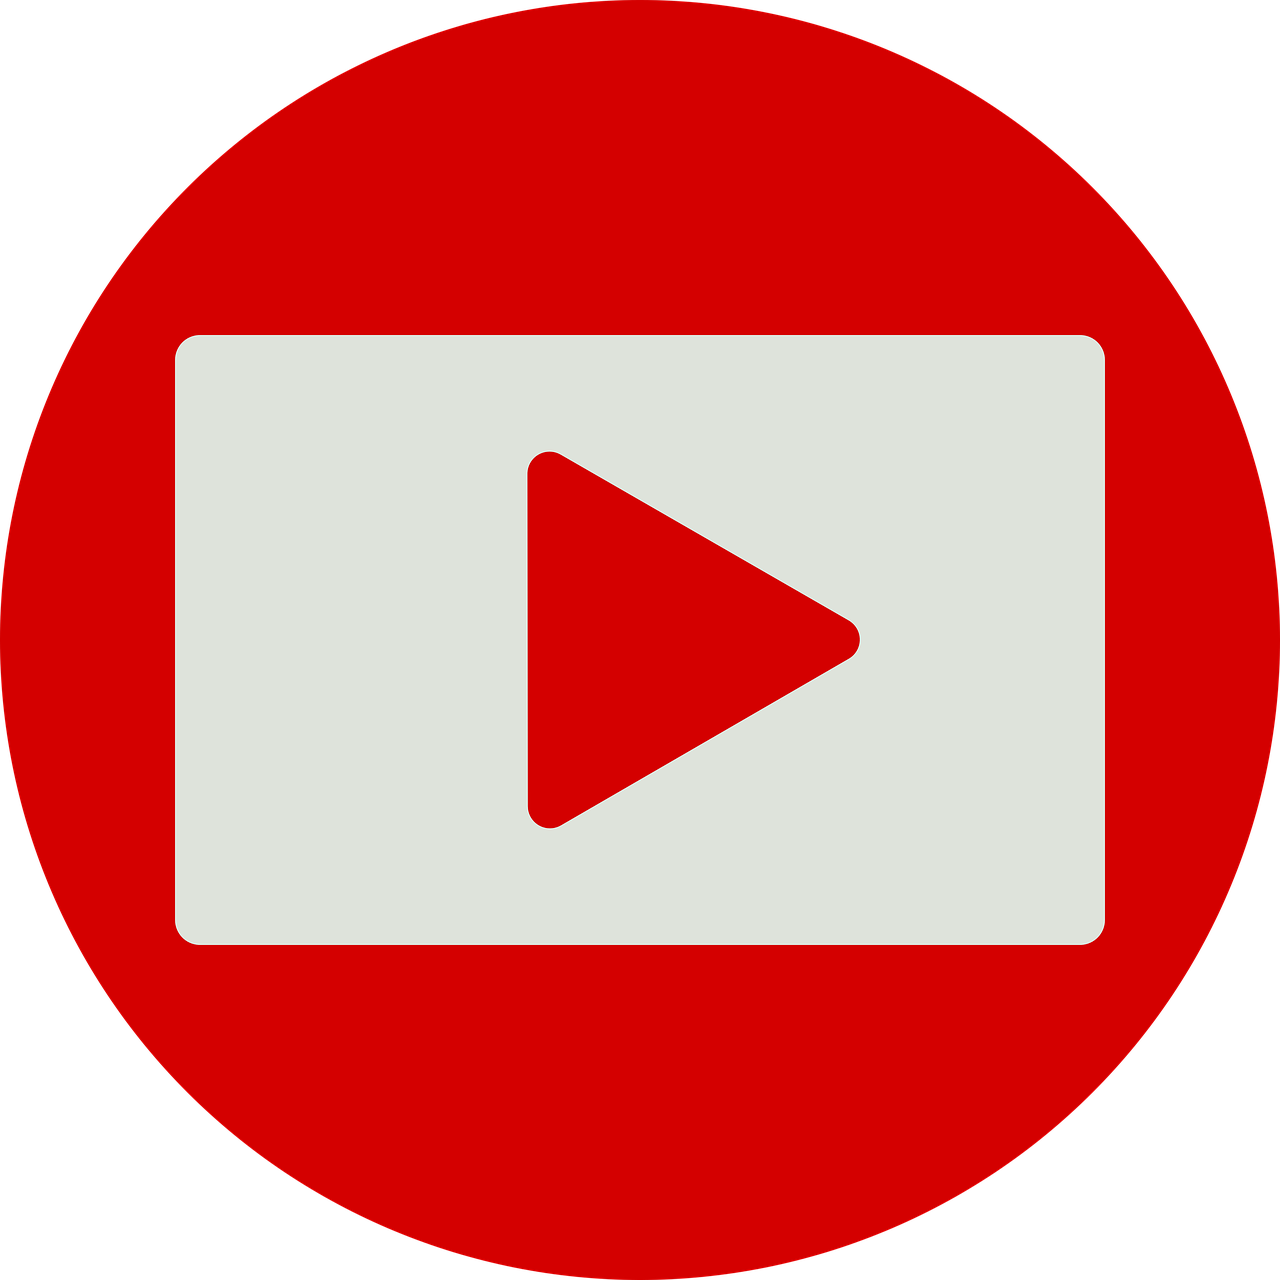 youtube, logo, web